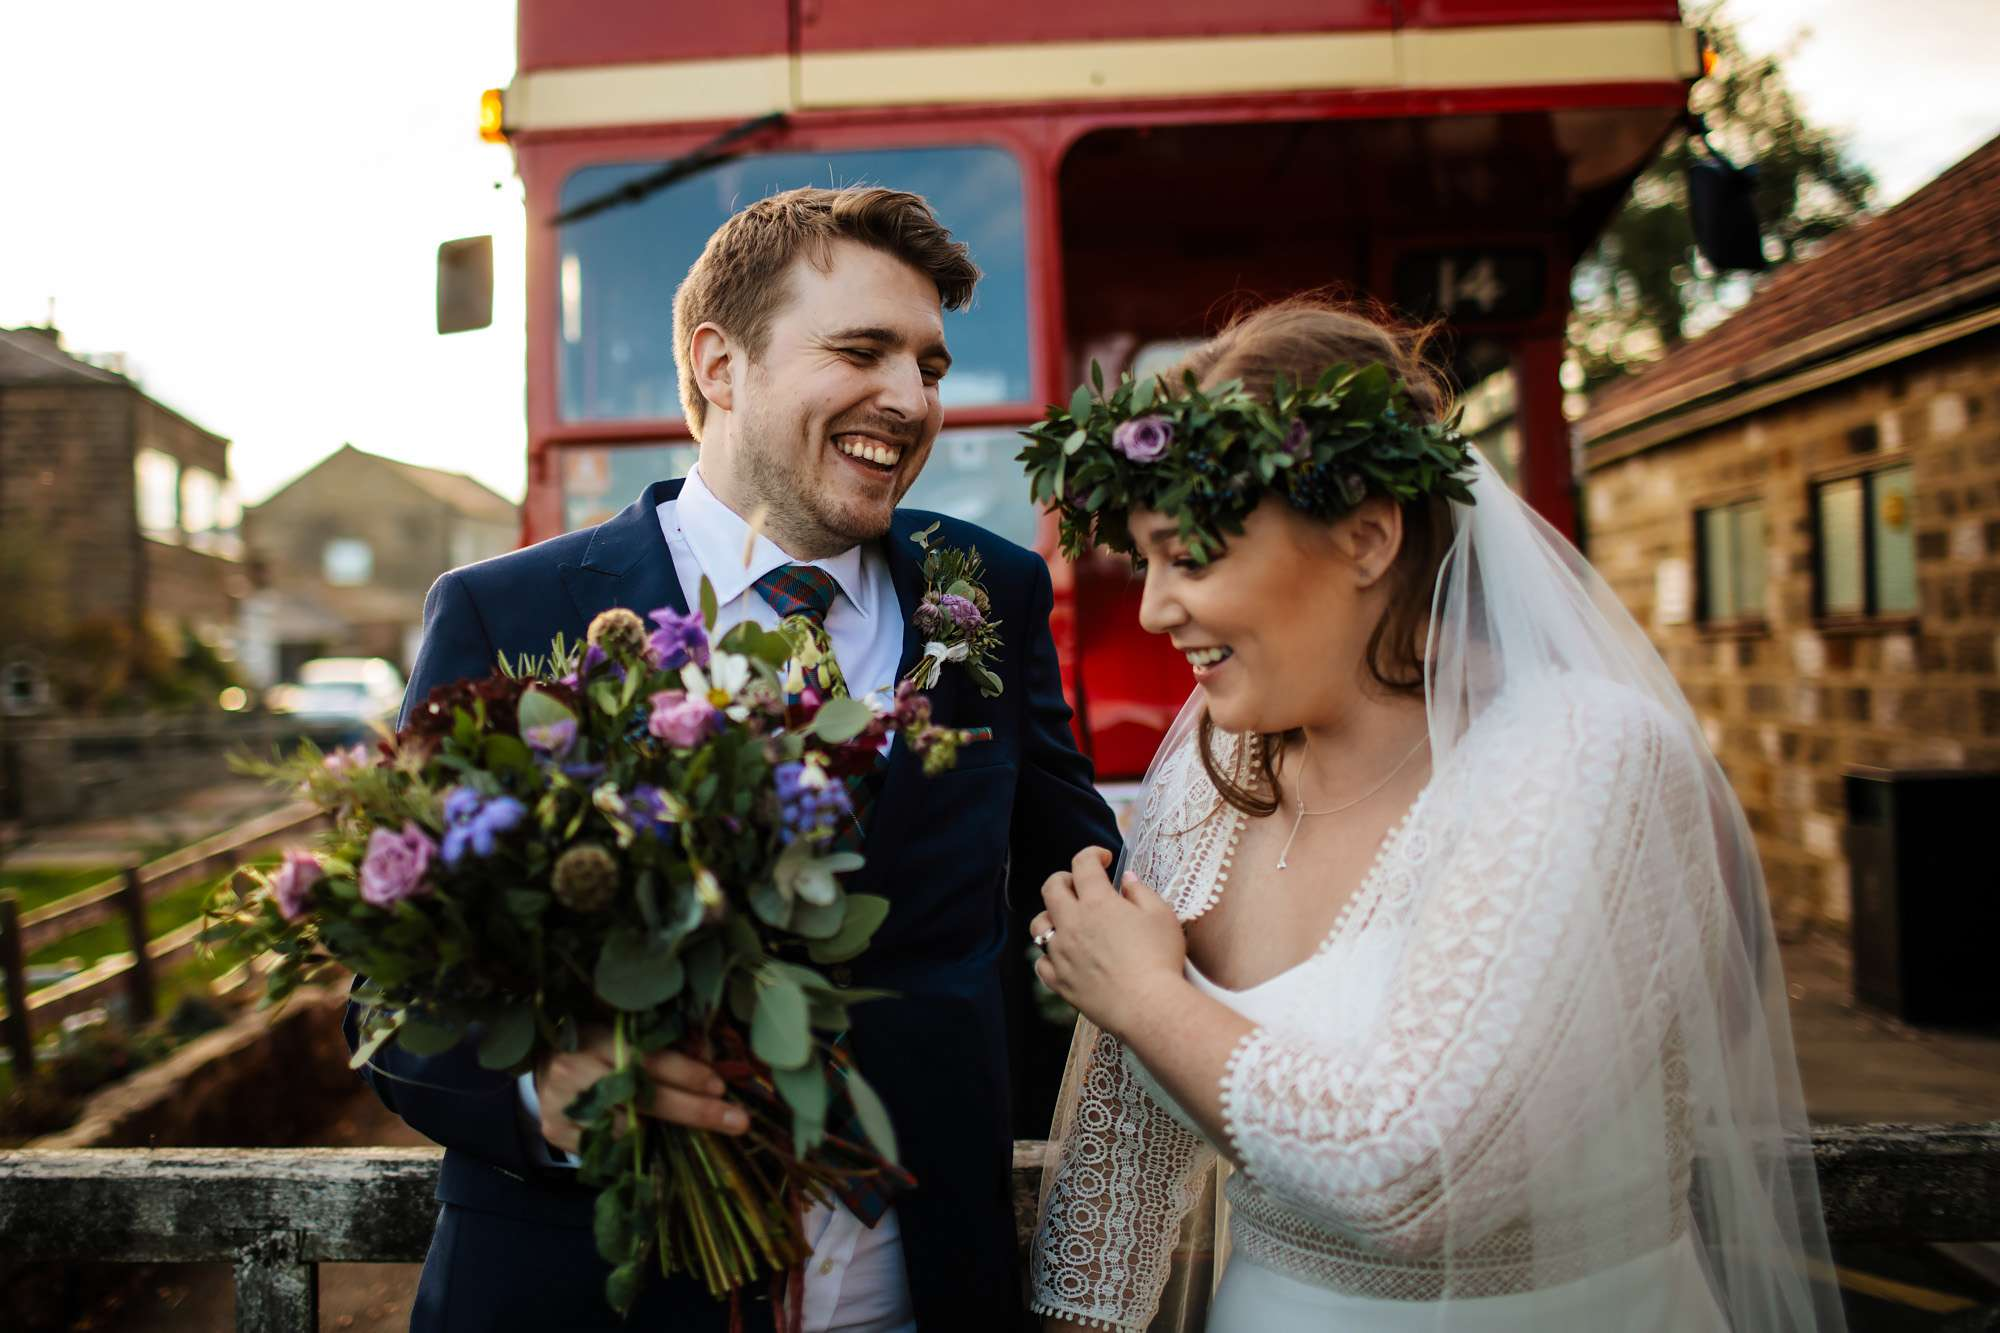 Bride and groom in front of their vintage wedding bus